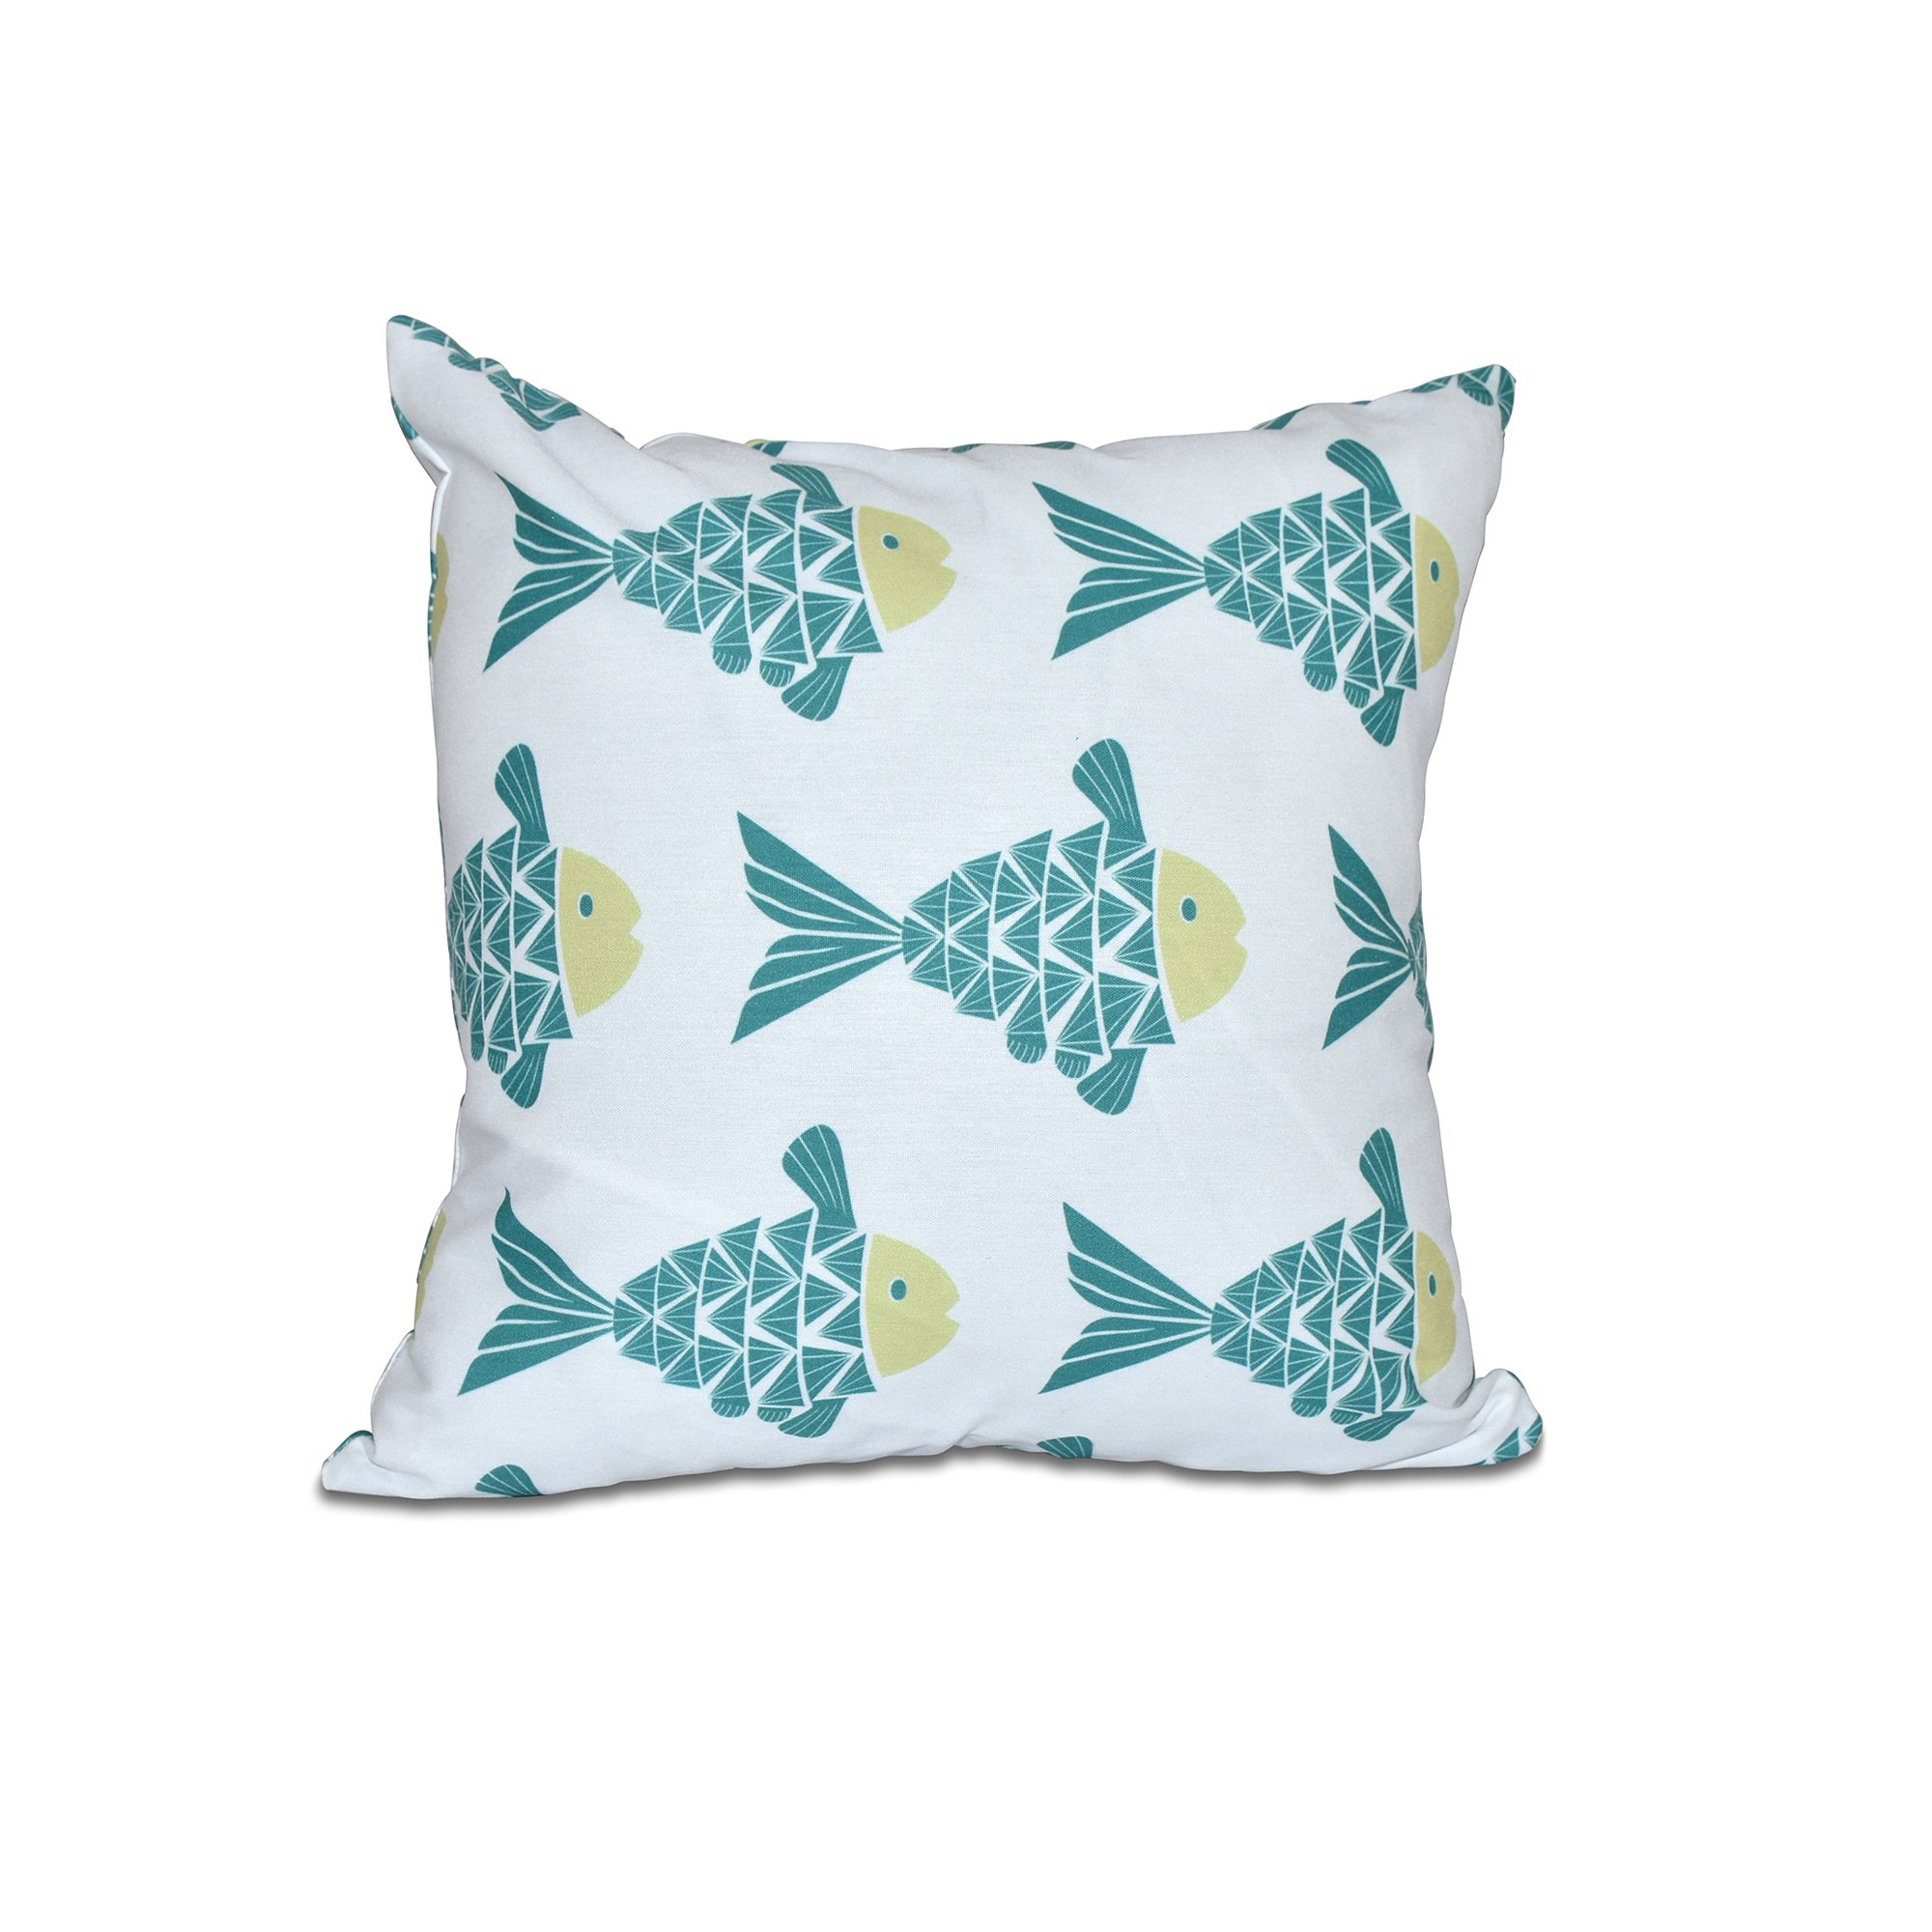 E by design 16 x 16 Fish Tales Animal Print Teal Pillow